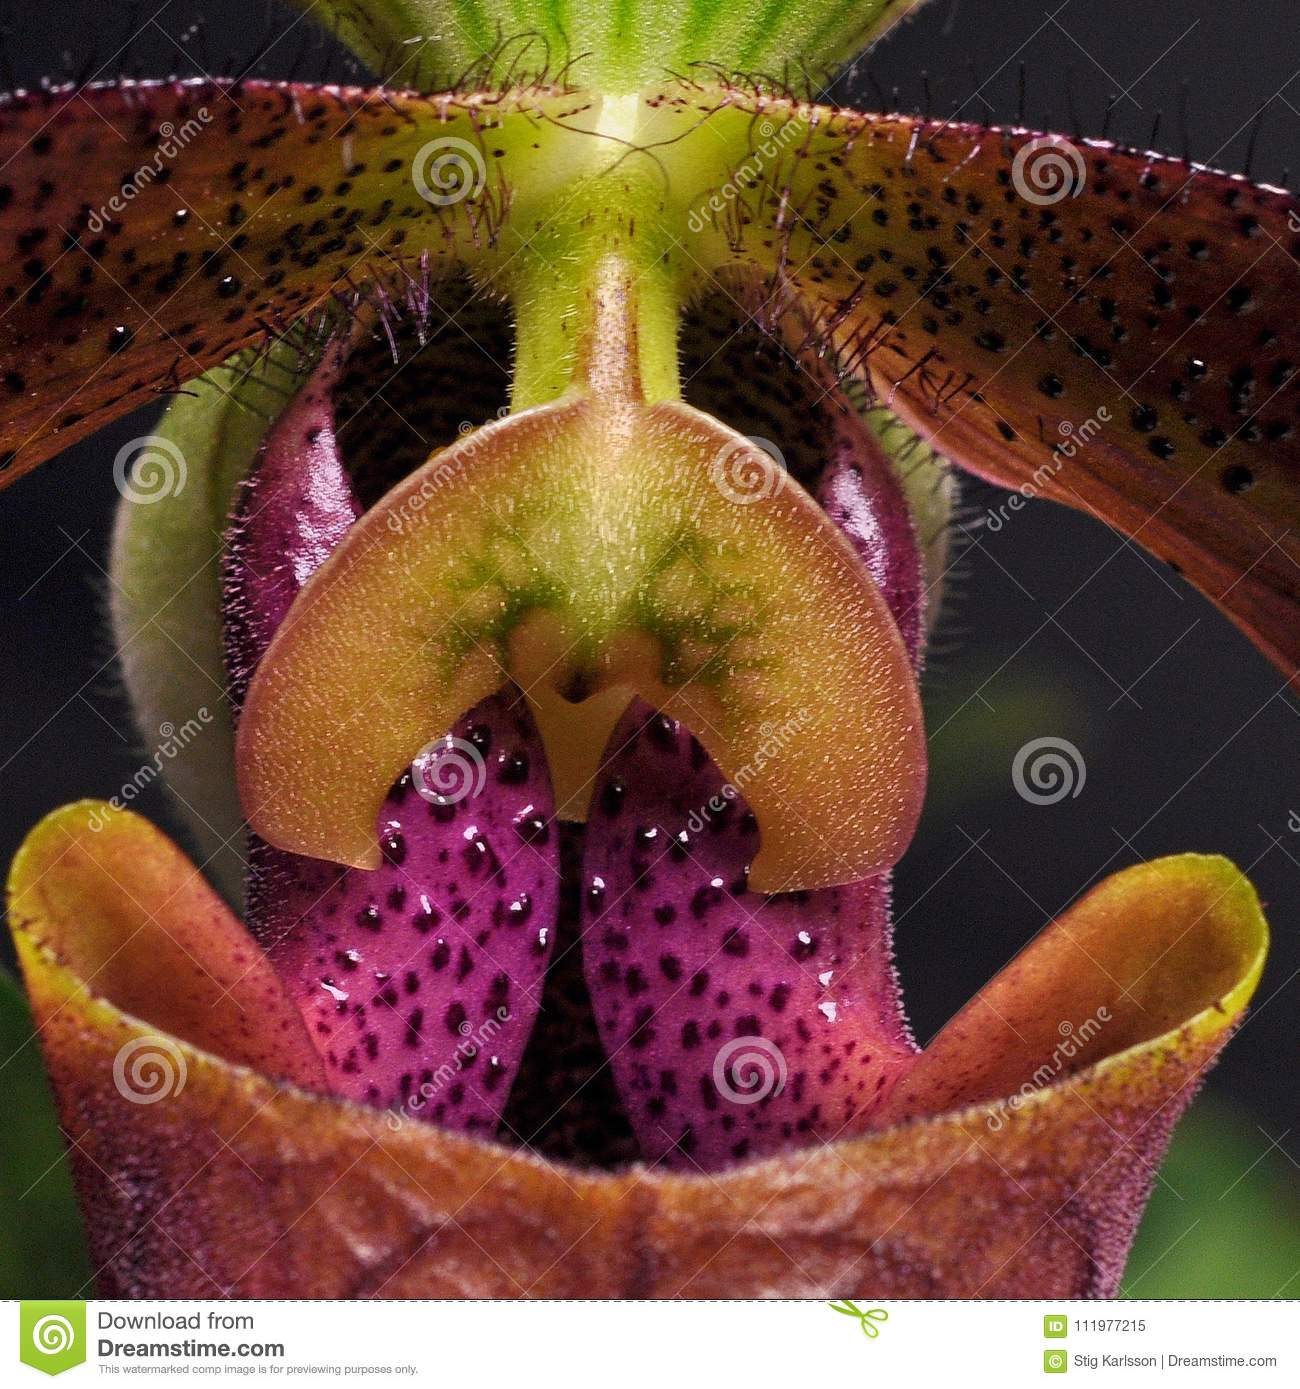 A close-up of an orchid Paphiopedilum in violet colors